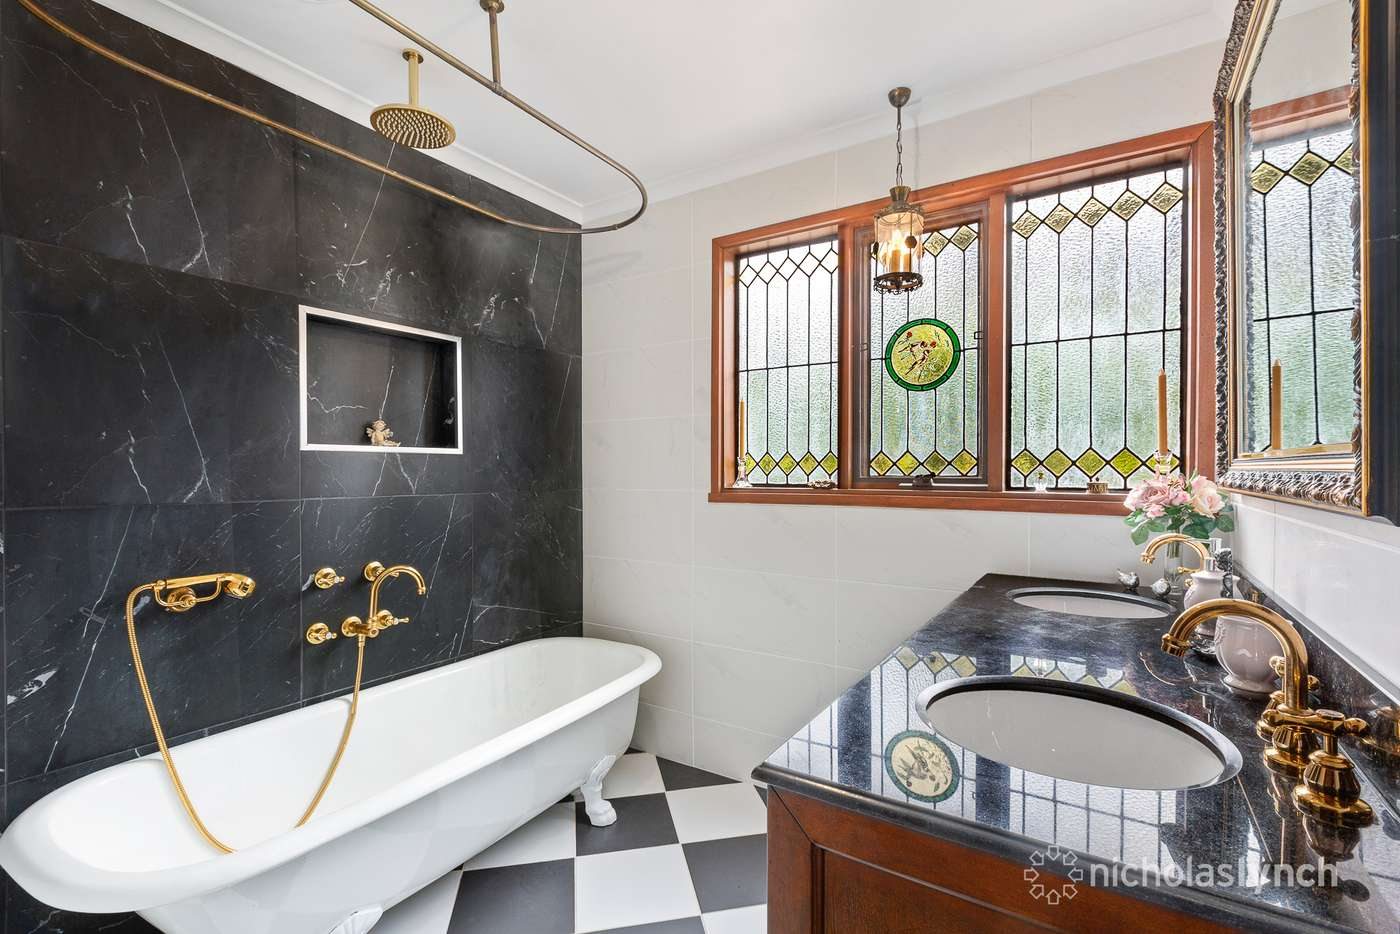 Fifth view of Homely house listing, 41 Wynnstay Road, Mount Eliza VIC 3930